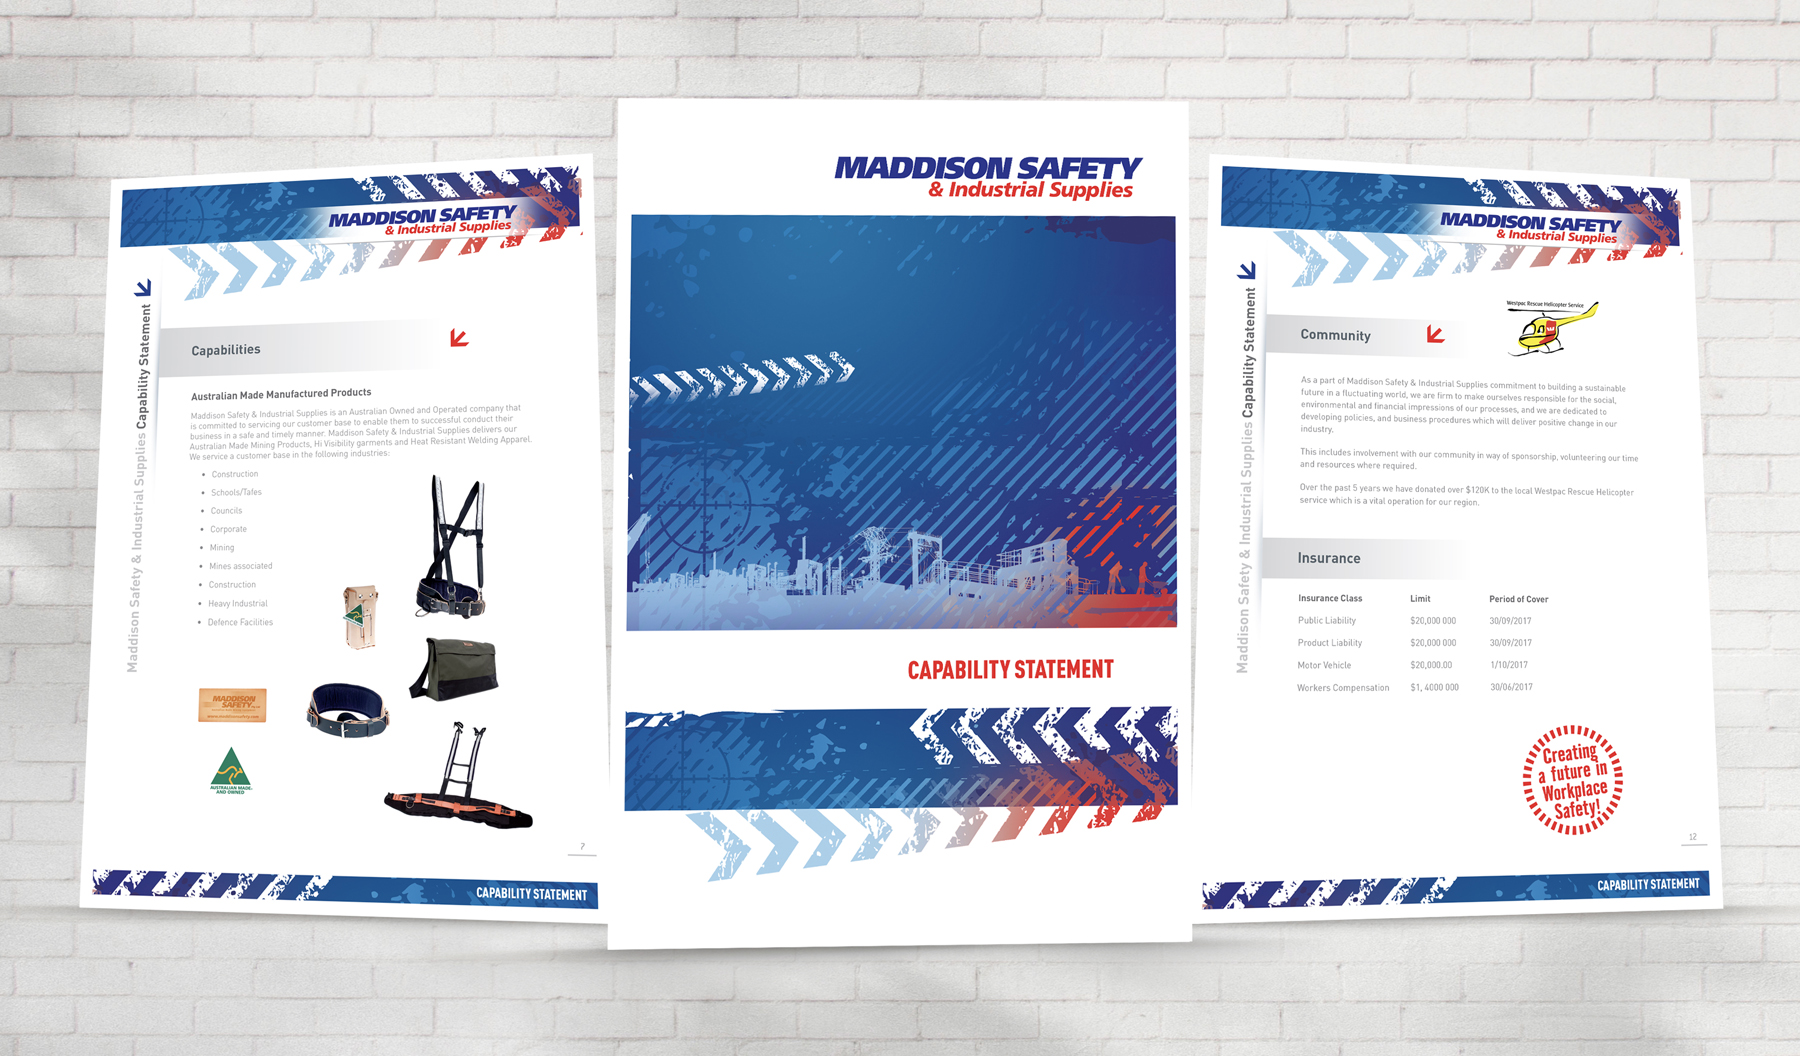 Maddison Safety Capability Document Page Samples